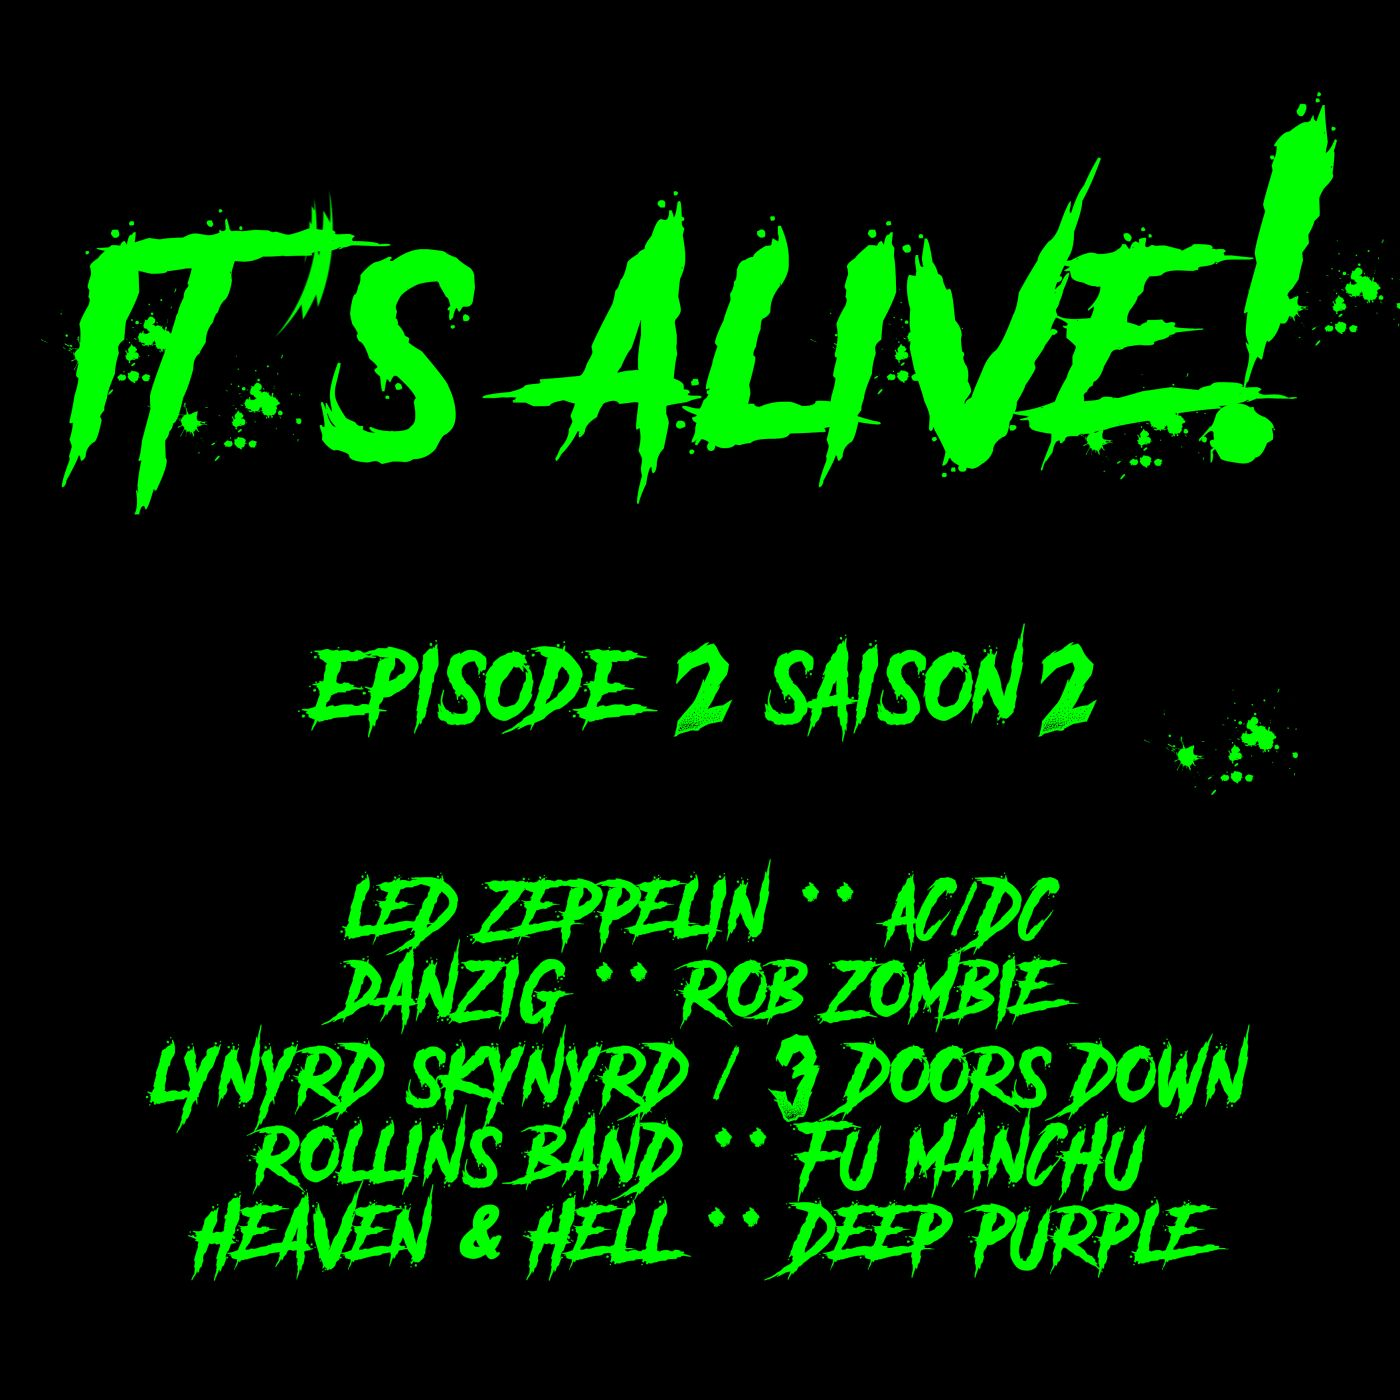 It's Alive! Episode 2